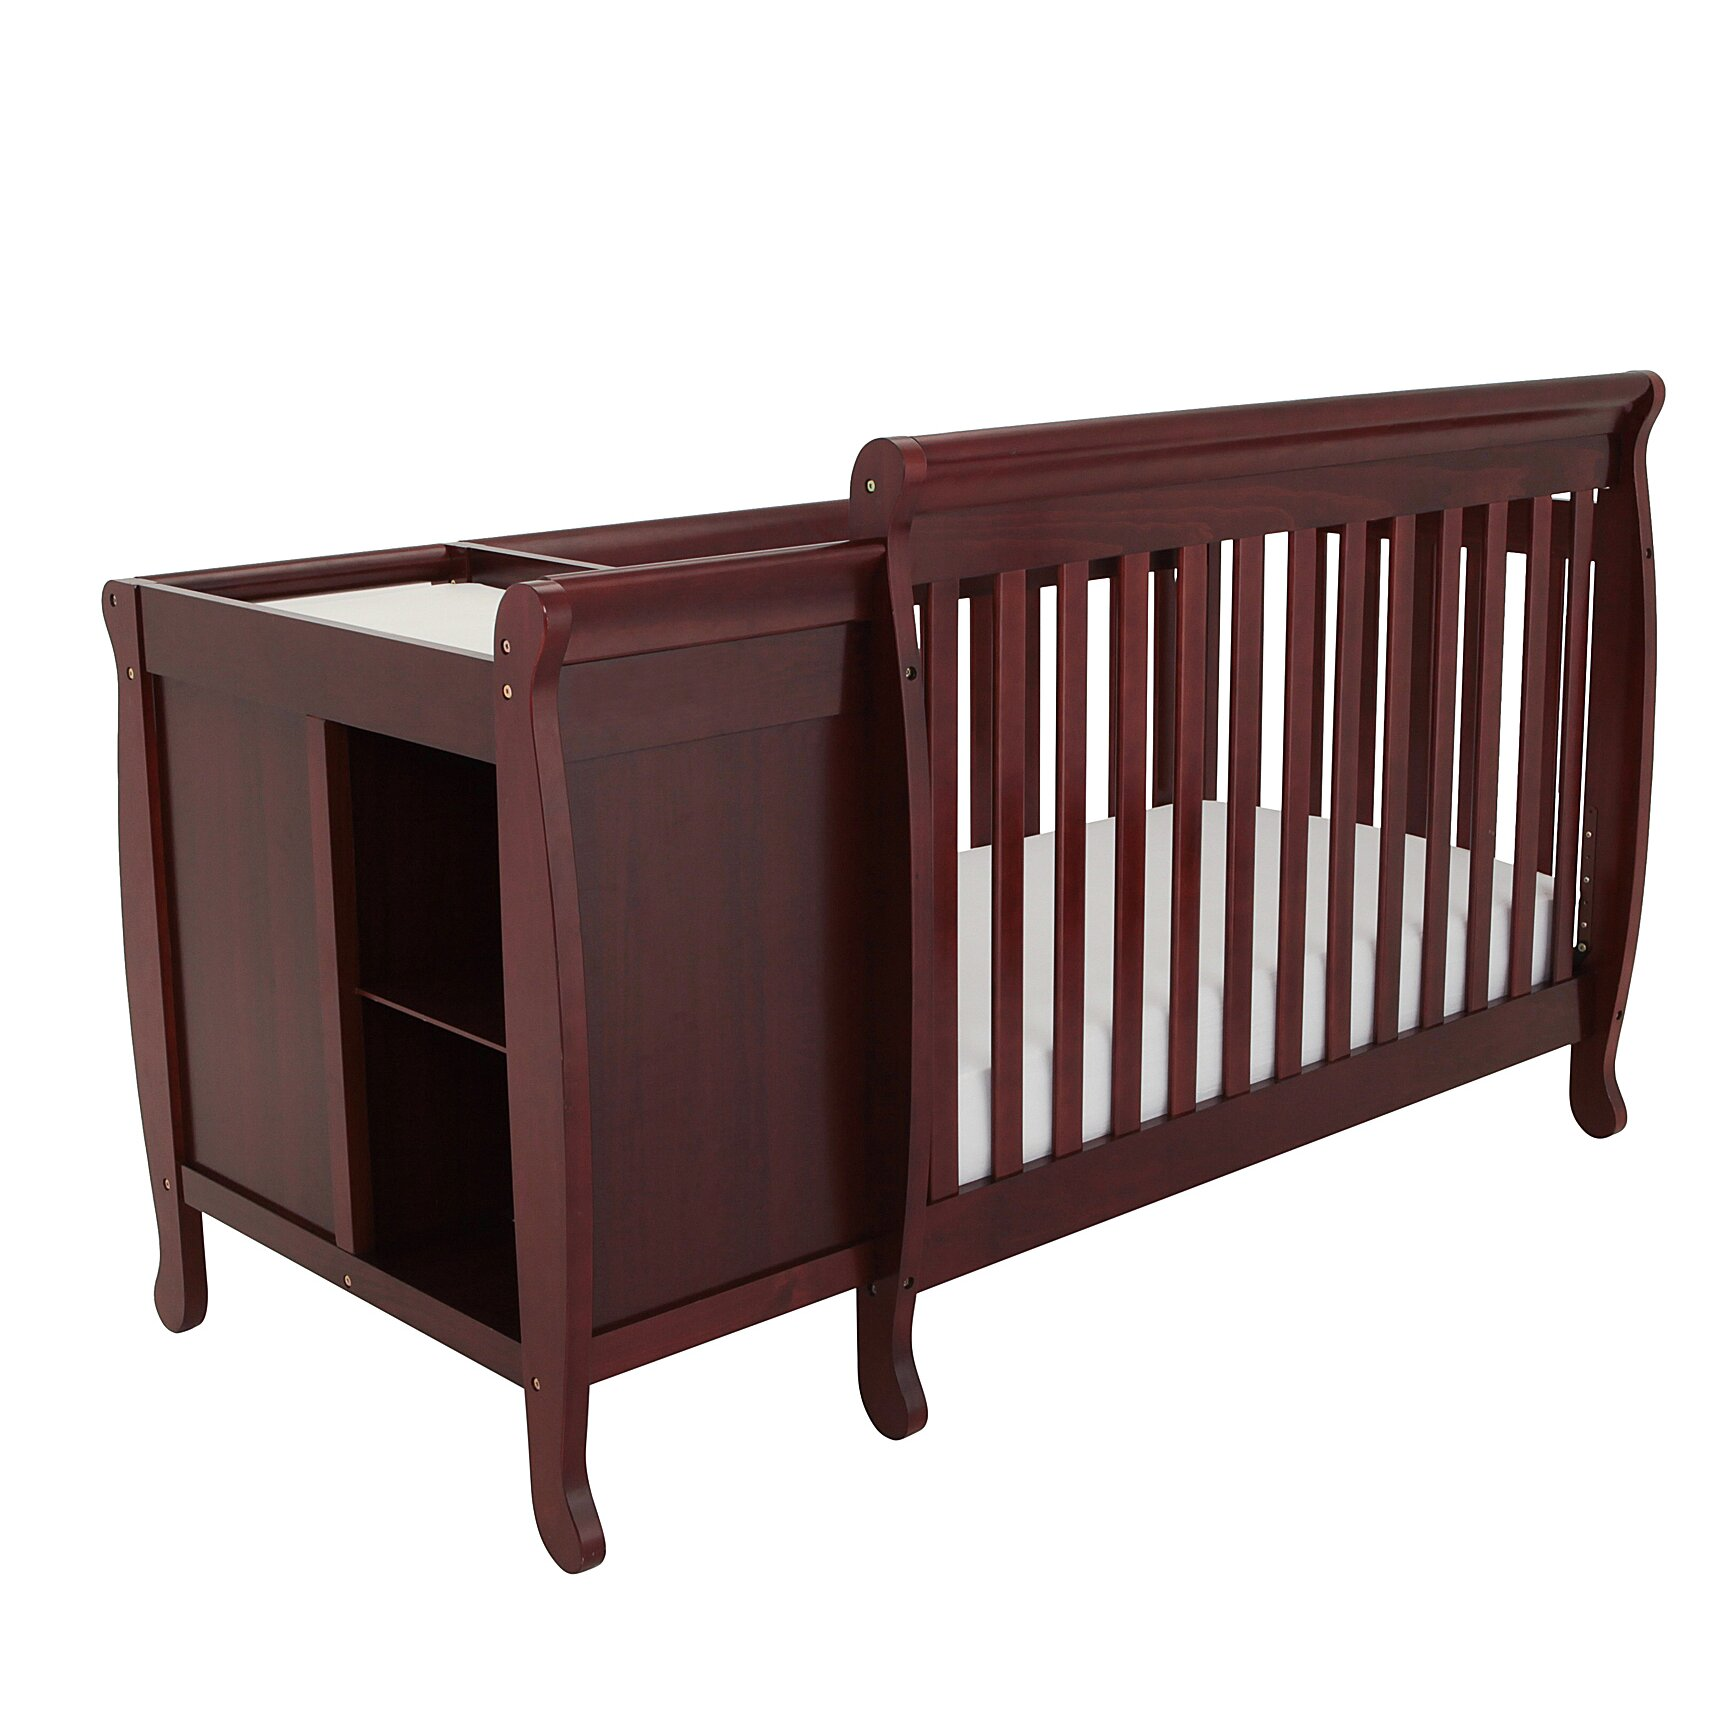 Crib for sale san diego - Afg Baby Furniture Kimberly 3 In 1 Convertible Crib